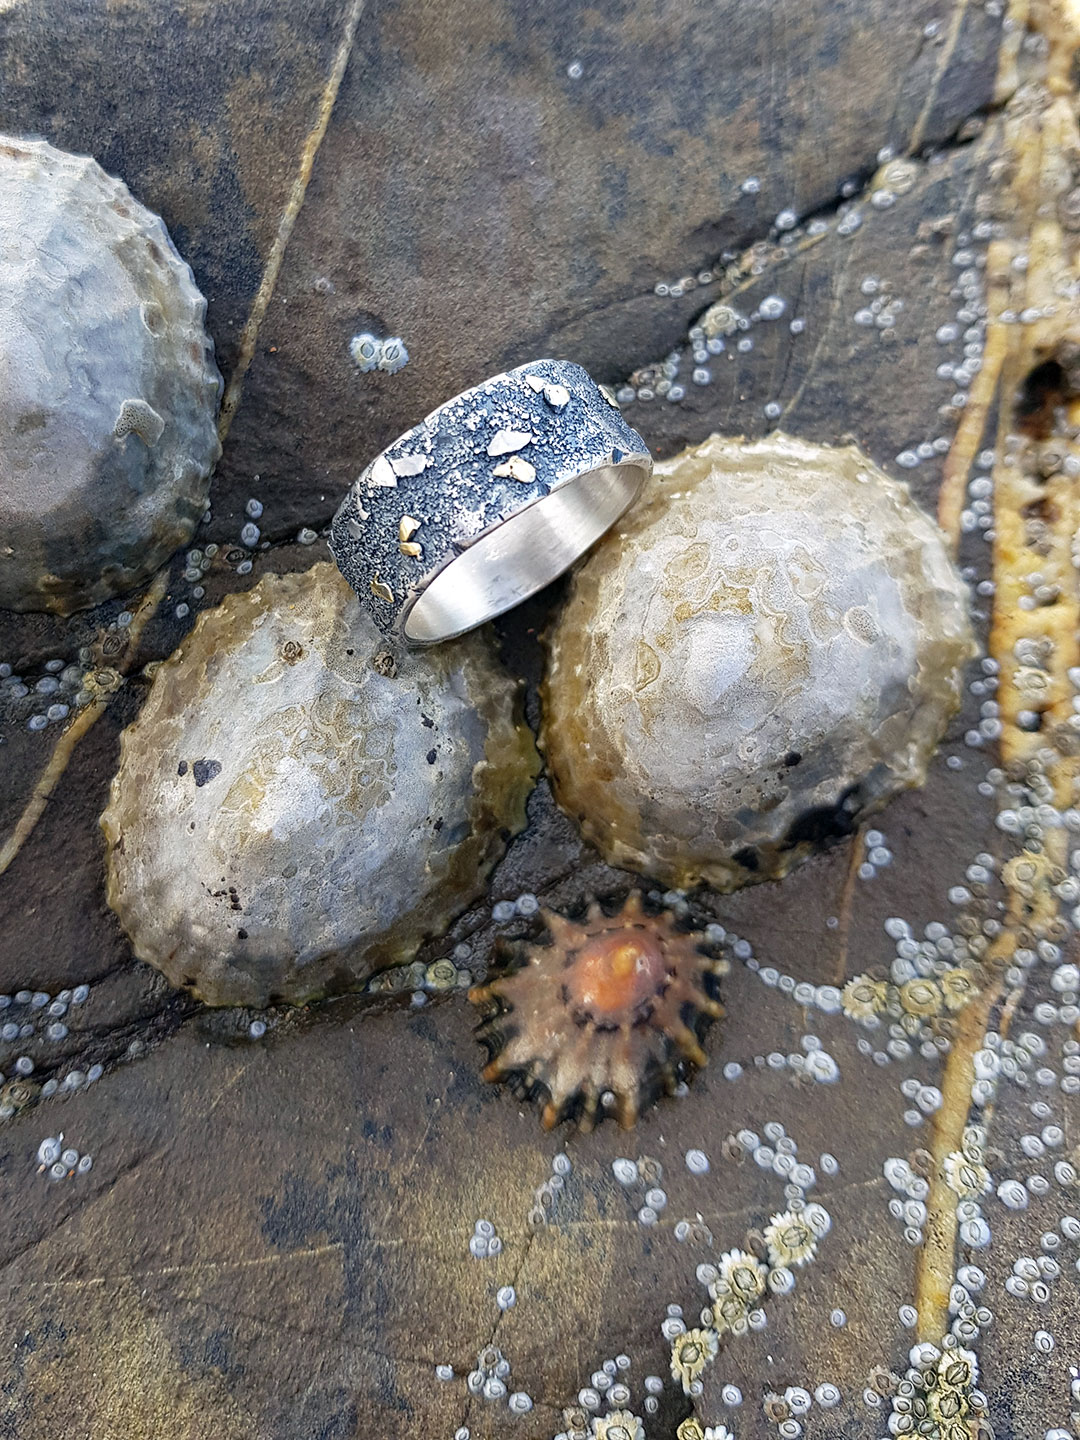 Graham's silver and gold Rugged wedding ring at the beach